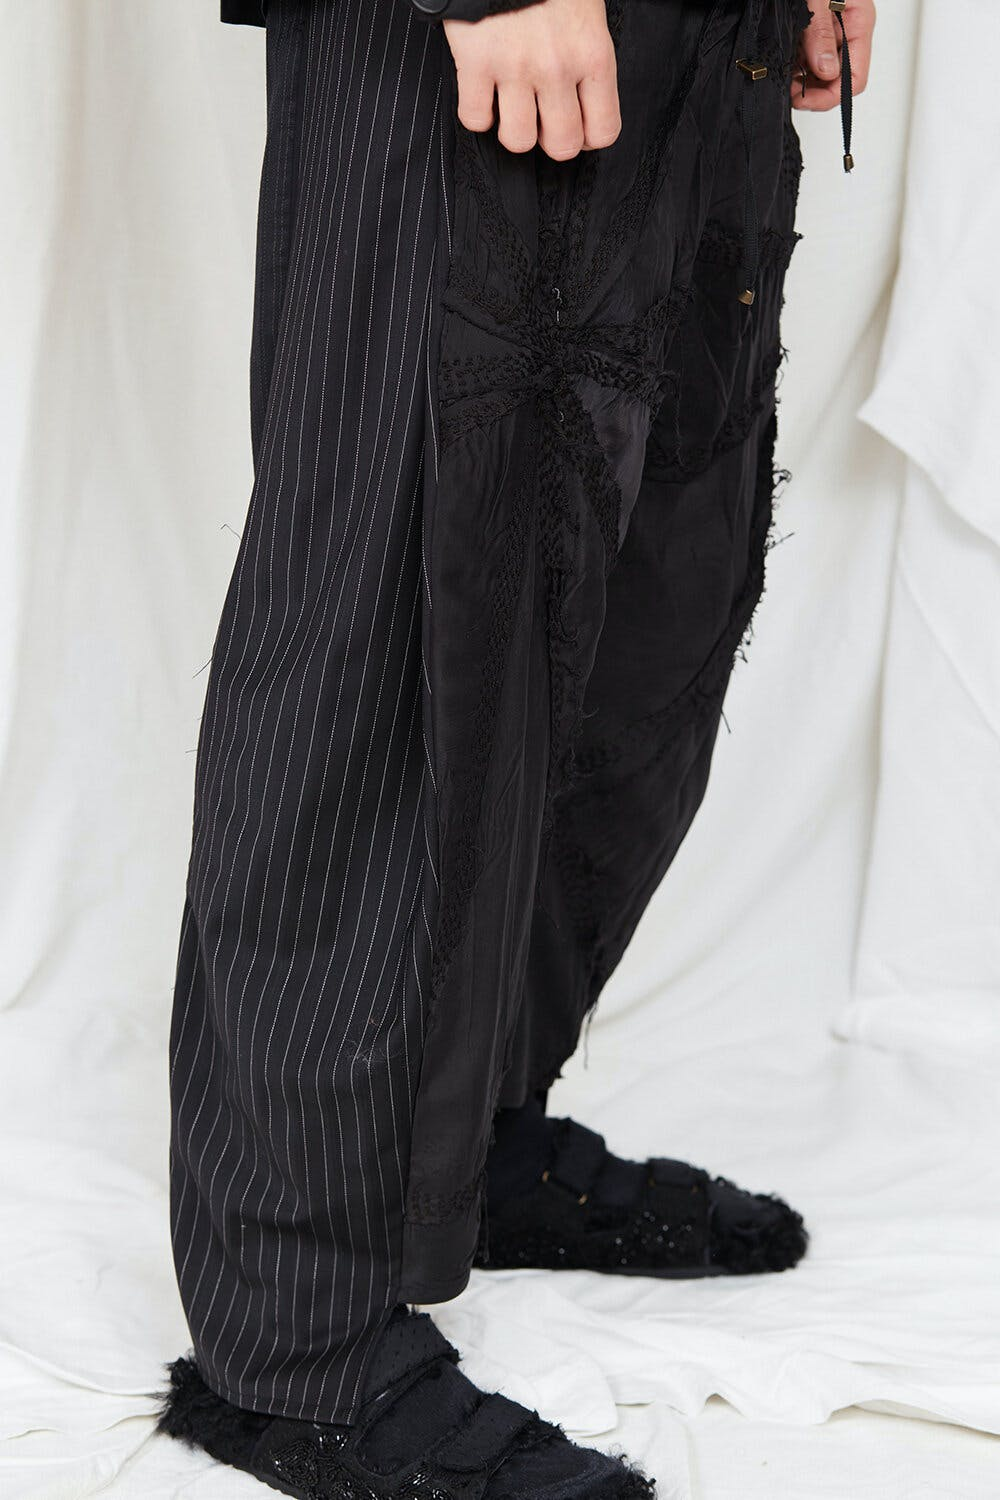 By Walid Campaign Burt Patch Work Trousers AW20